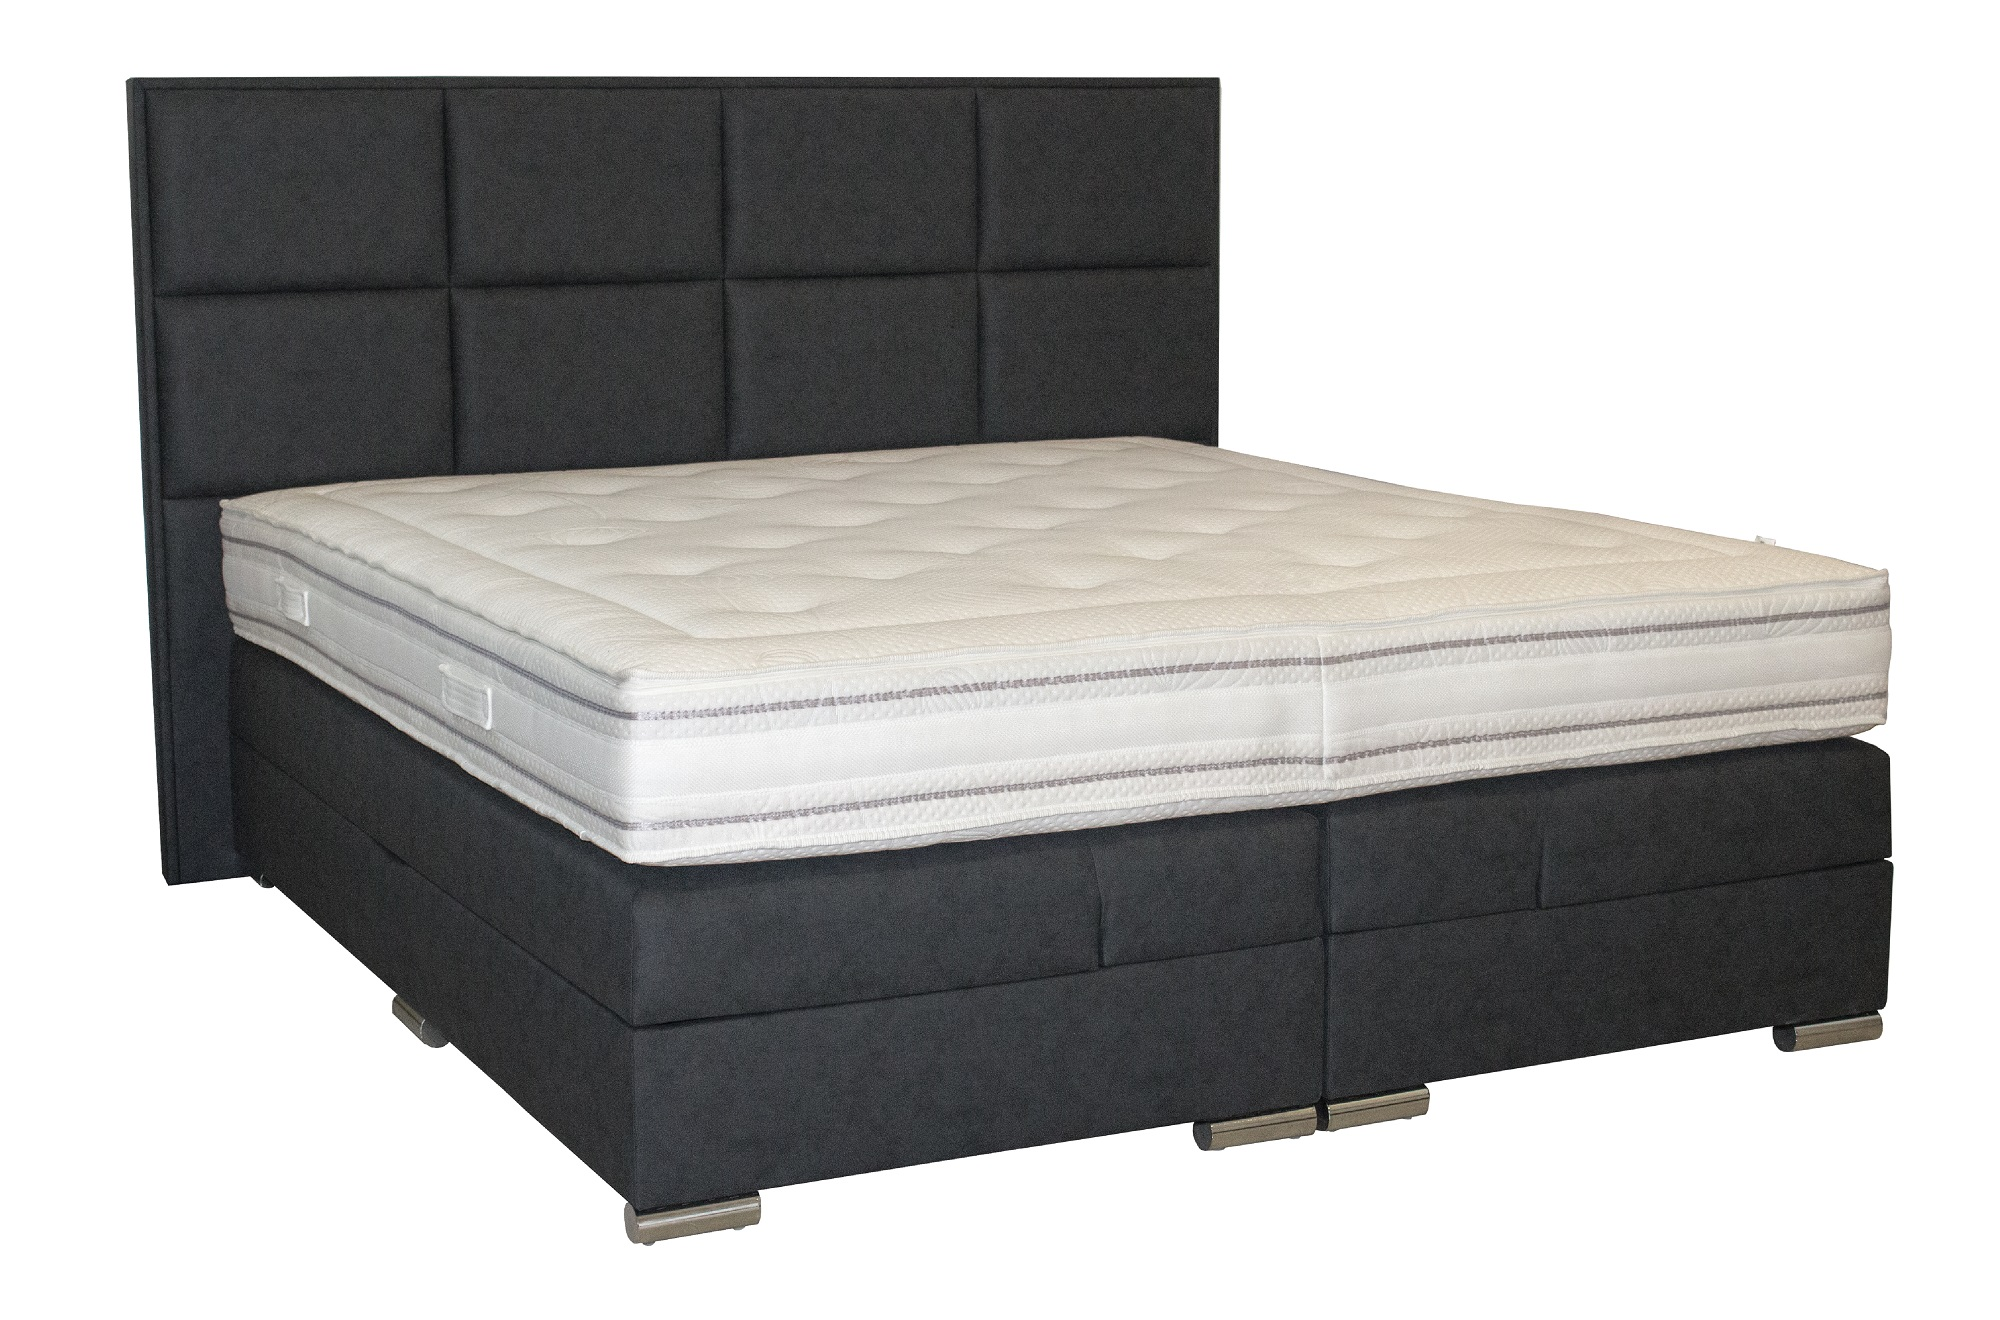 boxspringbett mit bettkasten 100x200 120x200 140x200 160x200 180x200 200x200 neu ebay. Black Bedroom Furniture Sets. Home Design Ideas